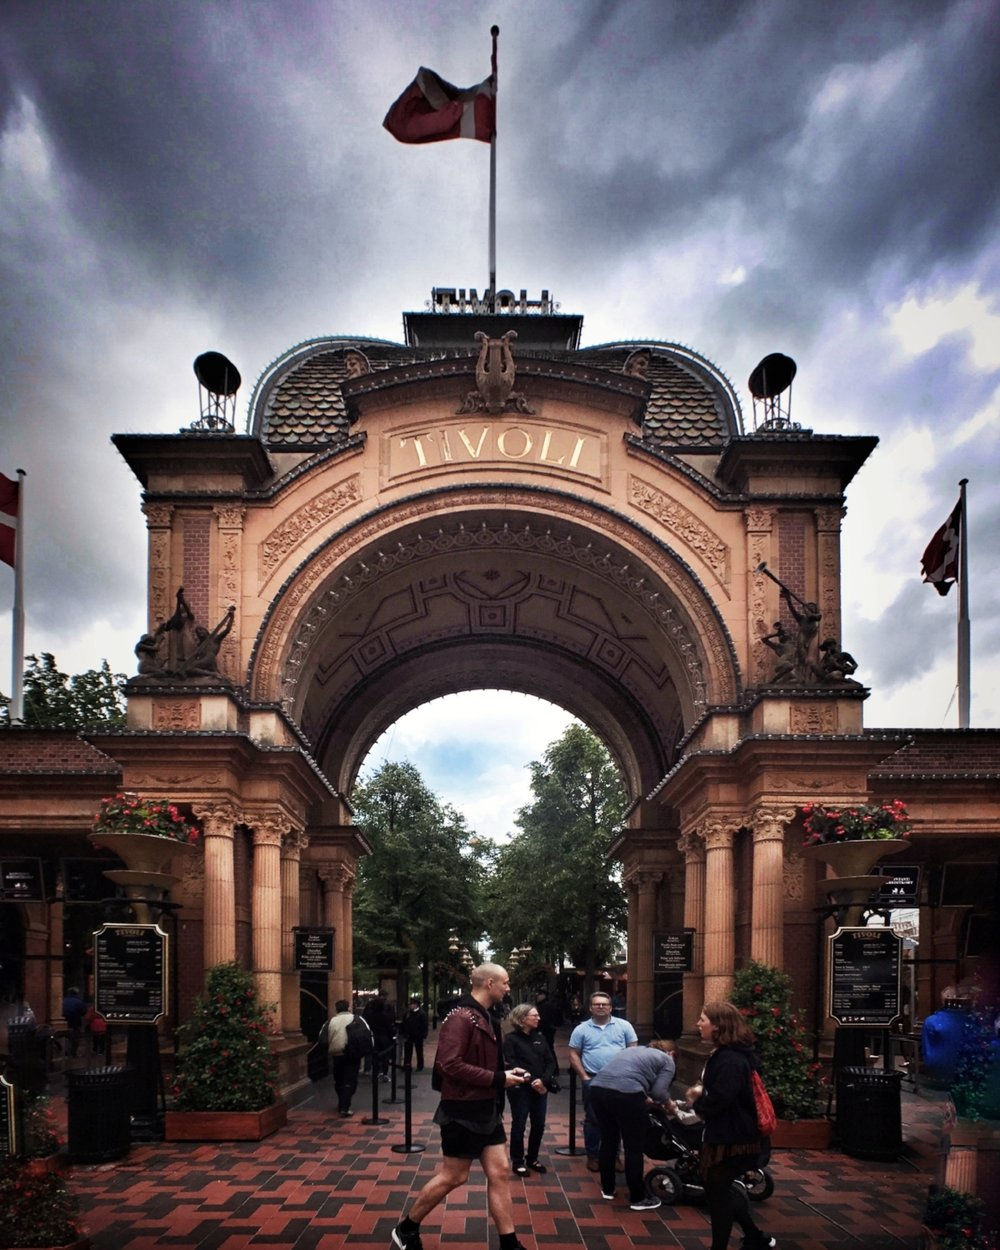 The entrance to Tivoli Gardens